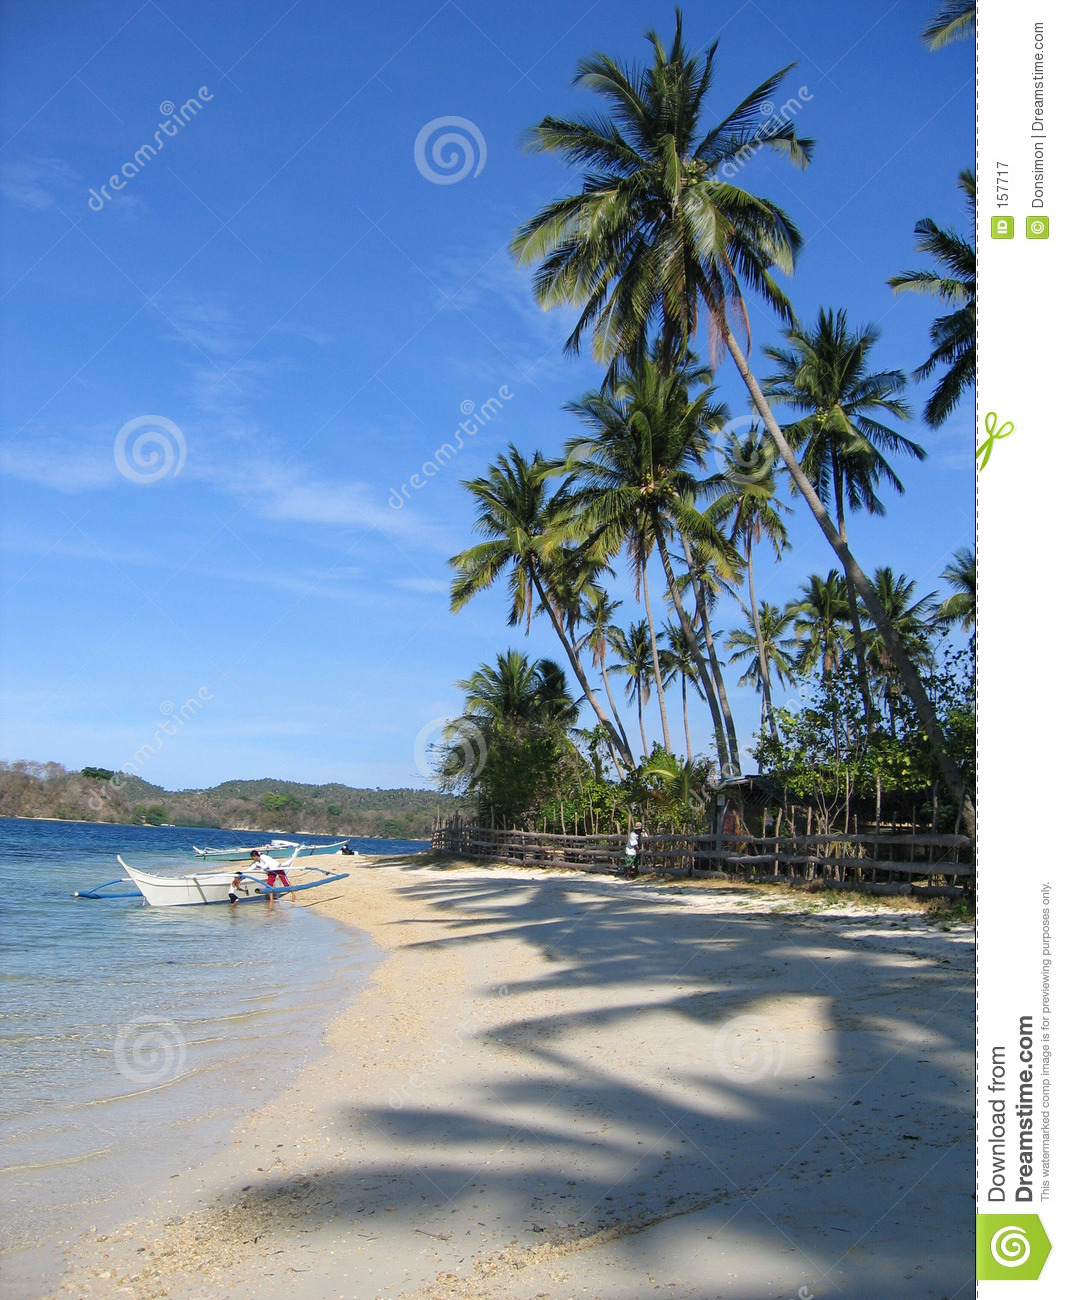 tropical beach palm trees philippines